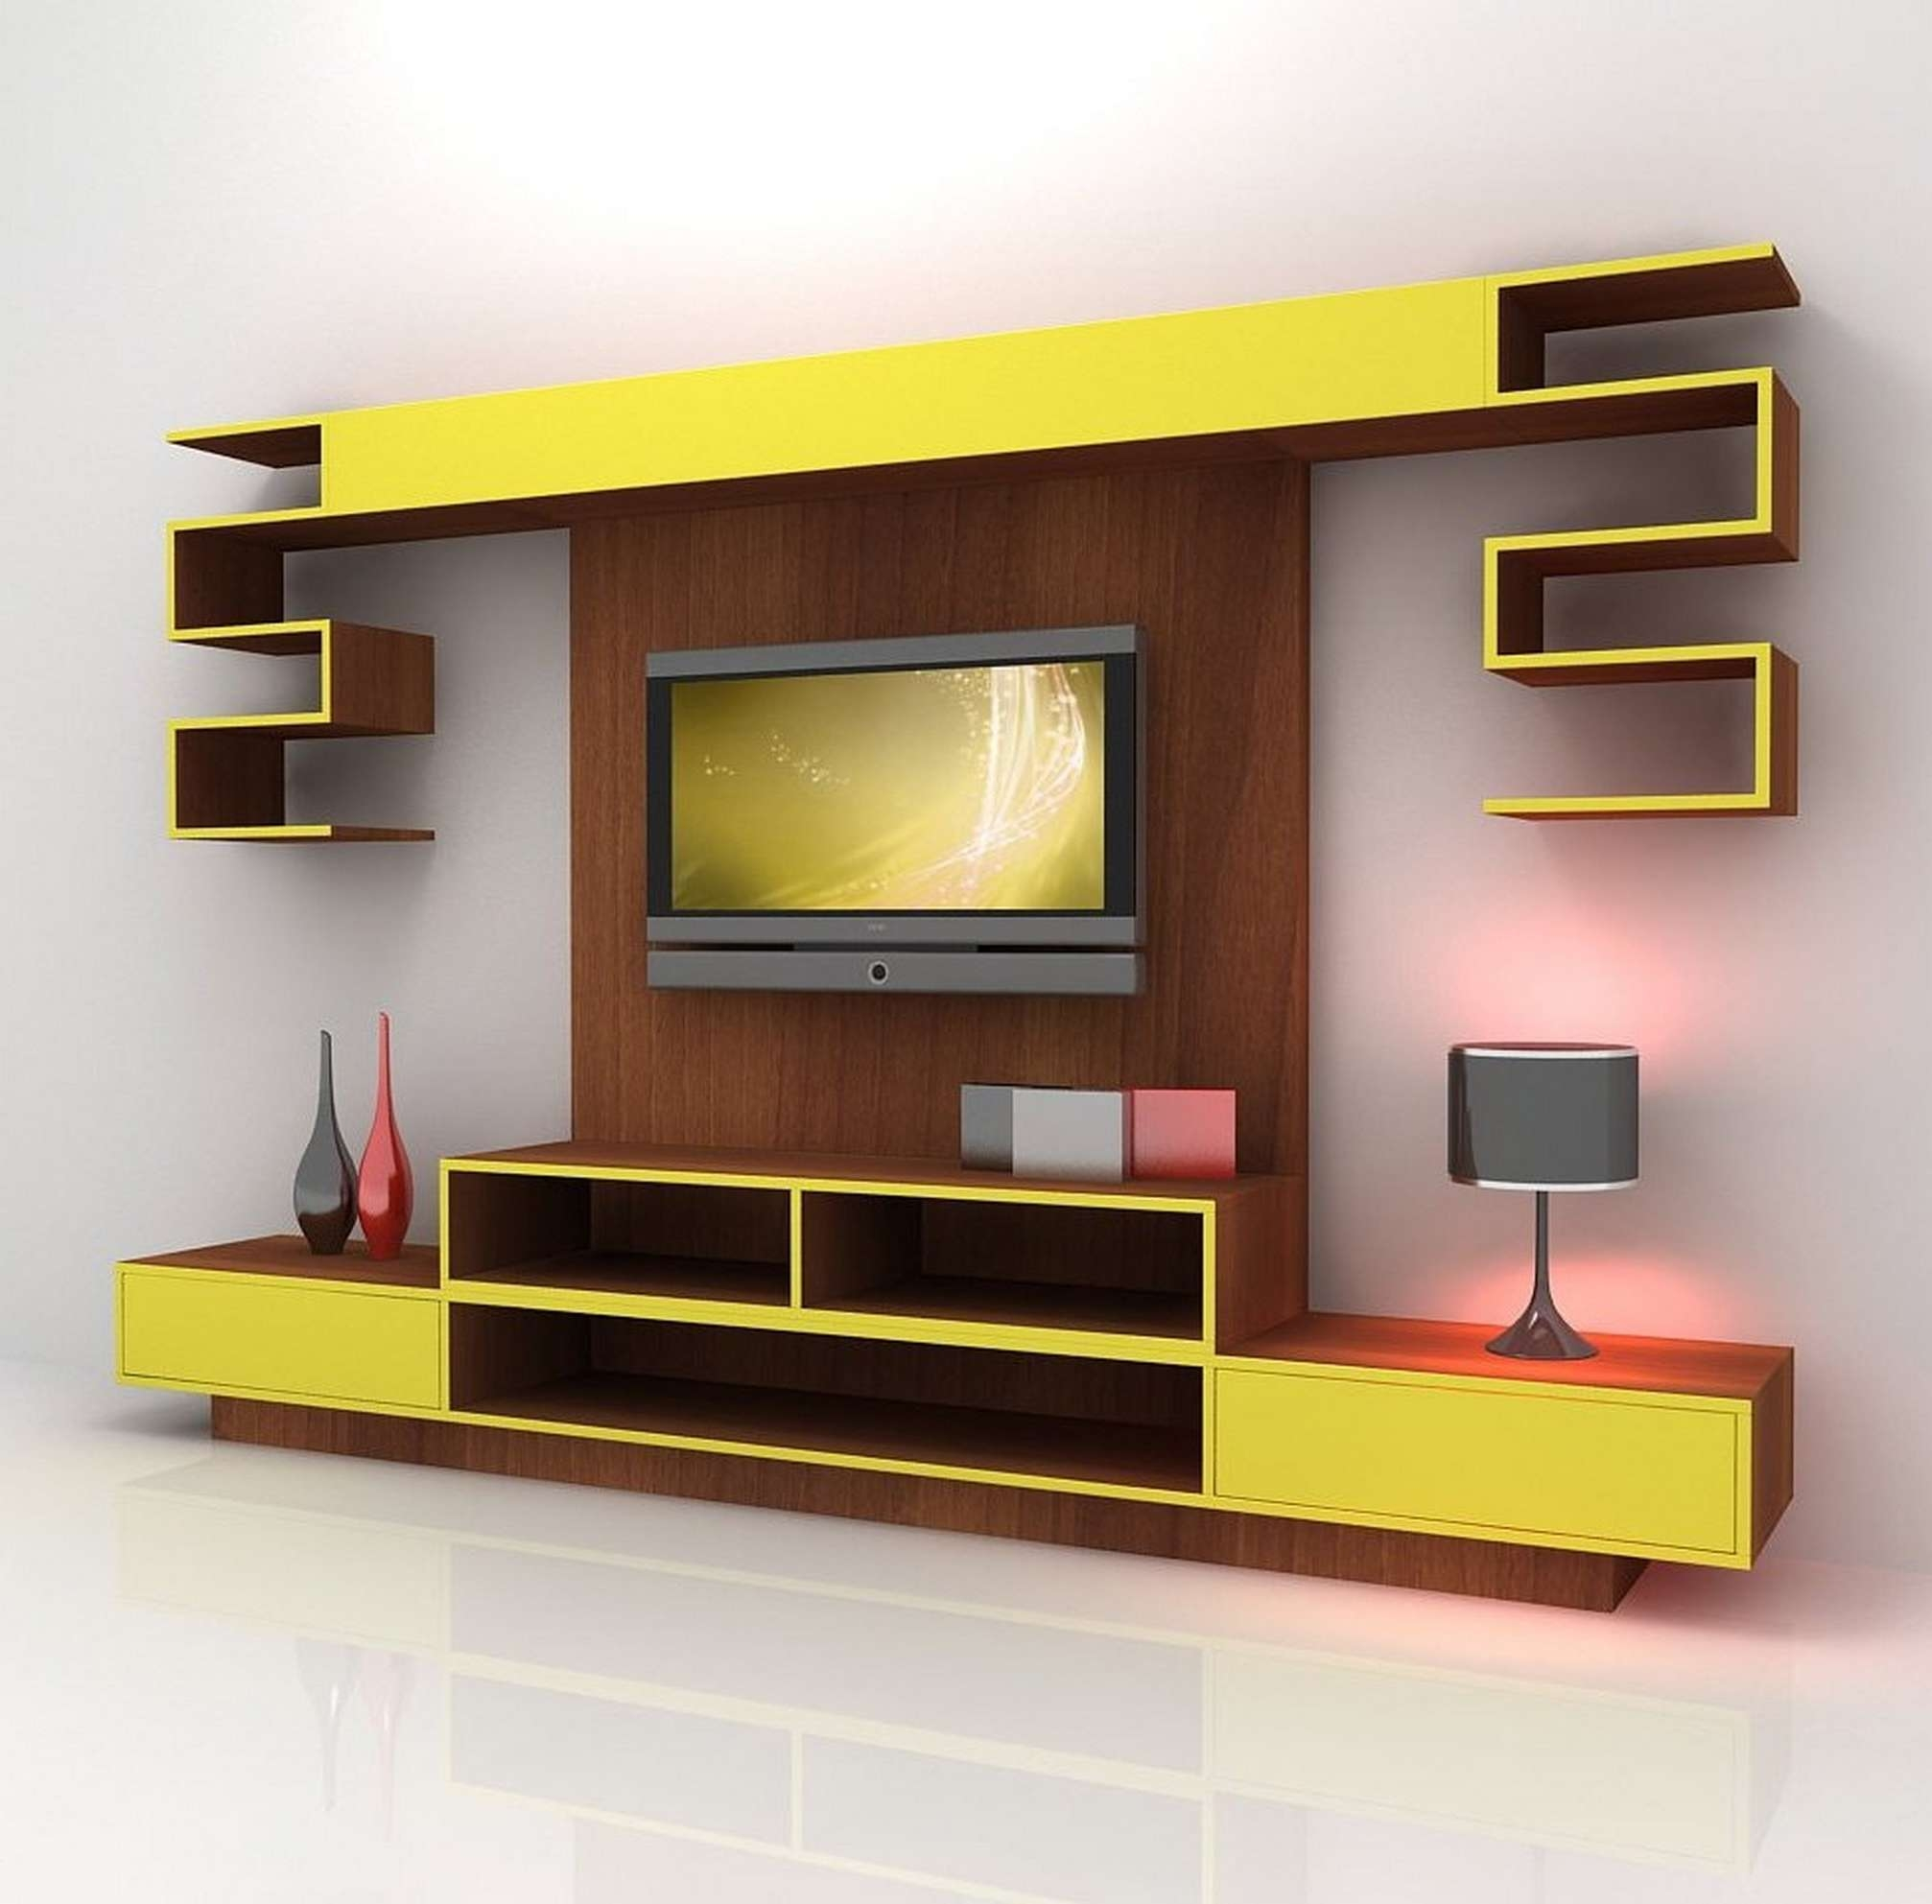 Engaging Ikea Com A Ikea A Tv Unit Grey Floating Shelves In Doors For Wall Mounted Tv Cabinets Ikea (Gallery 5 of 20)